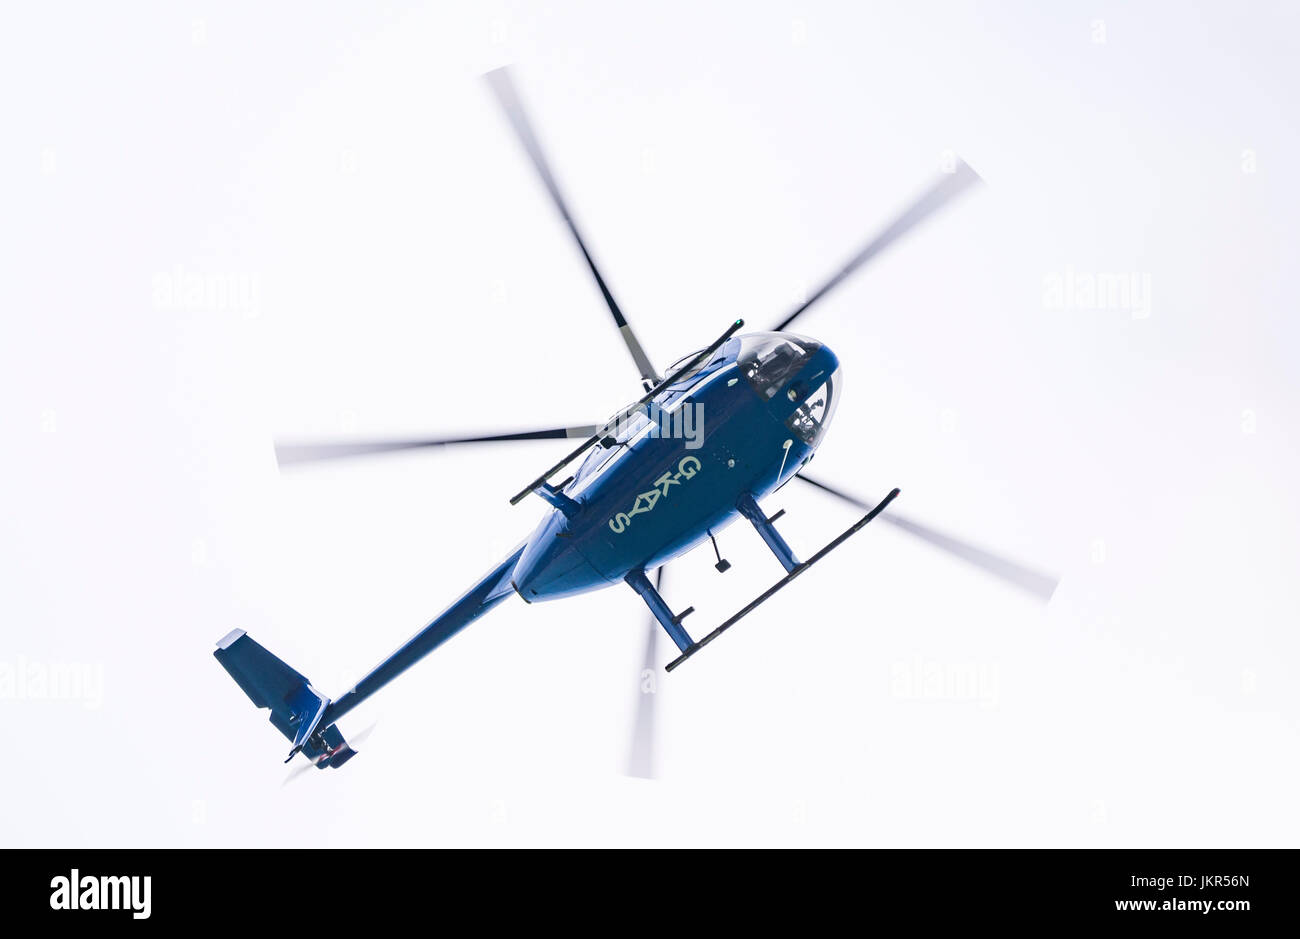 Looking up at a low flying helicopter. - Stock Image